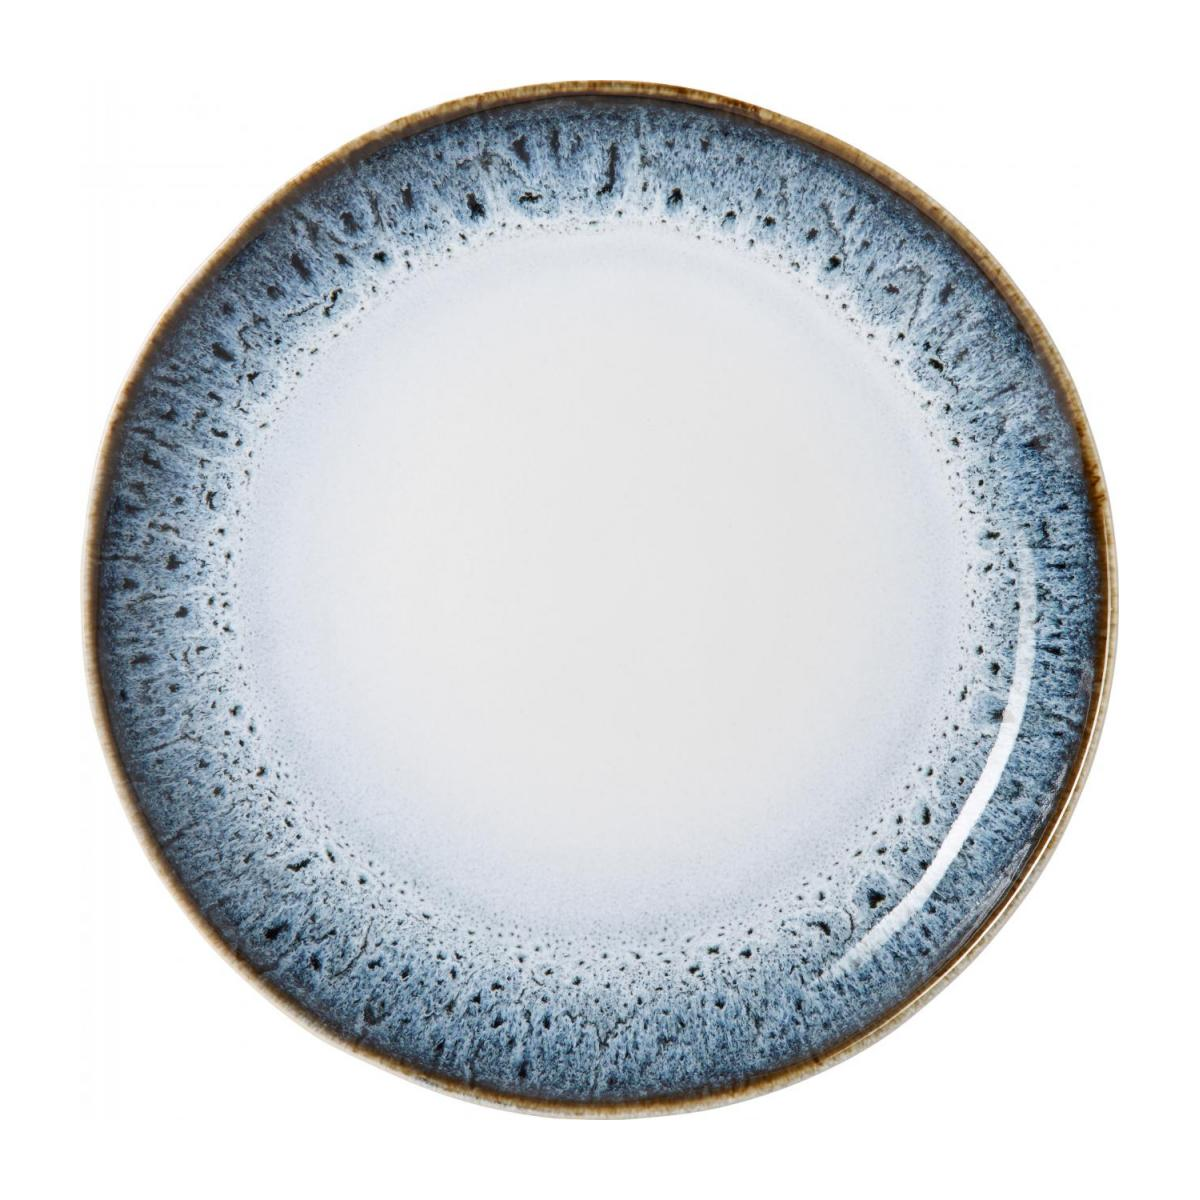 Flat plate made of sandstone 27,5cm, white and black n°1